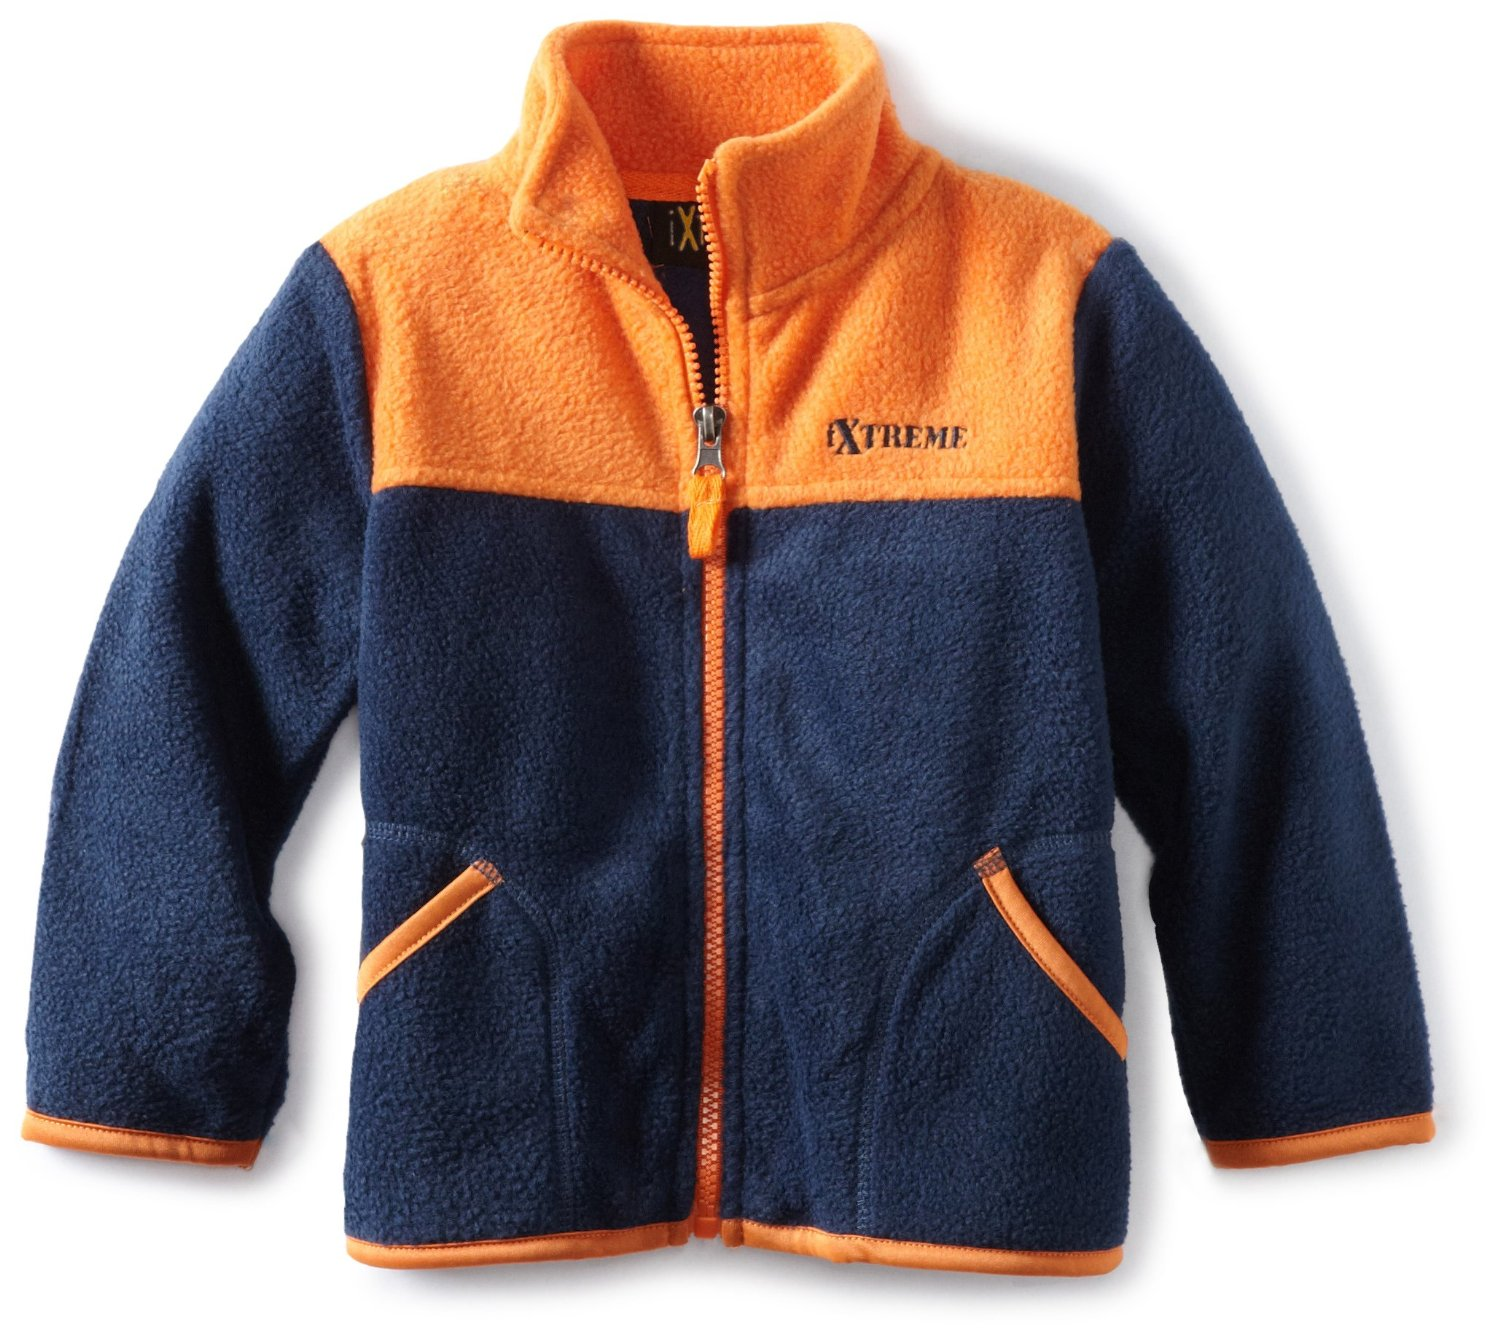 Ixtreme Baby-Boys 12-24M Navy Blue Polar Fleece Color Block Jacket at Sears.com